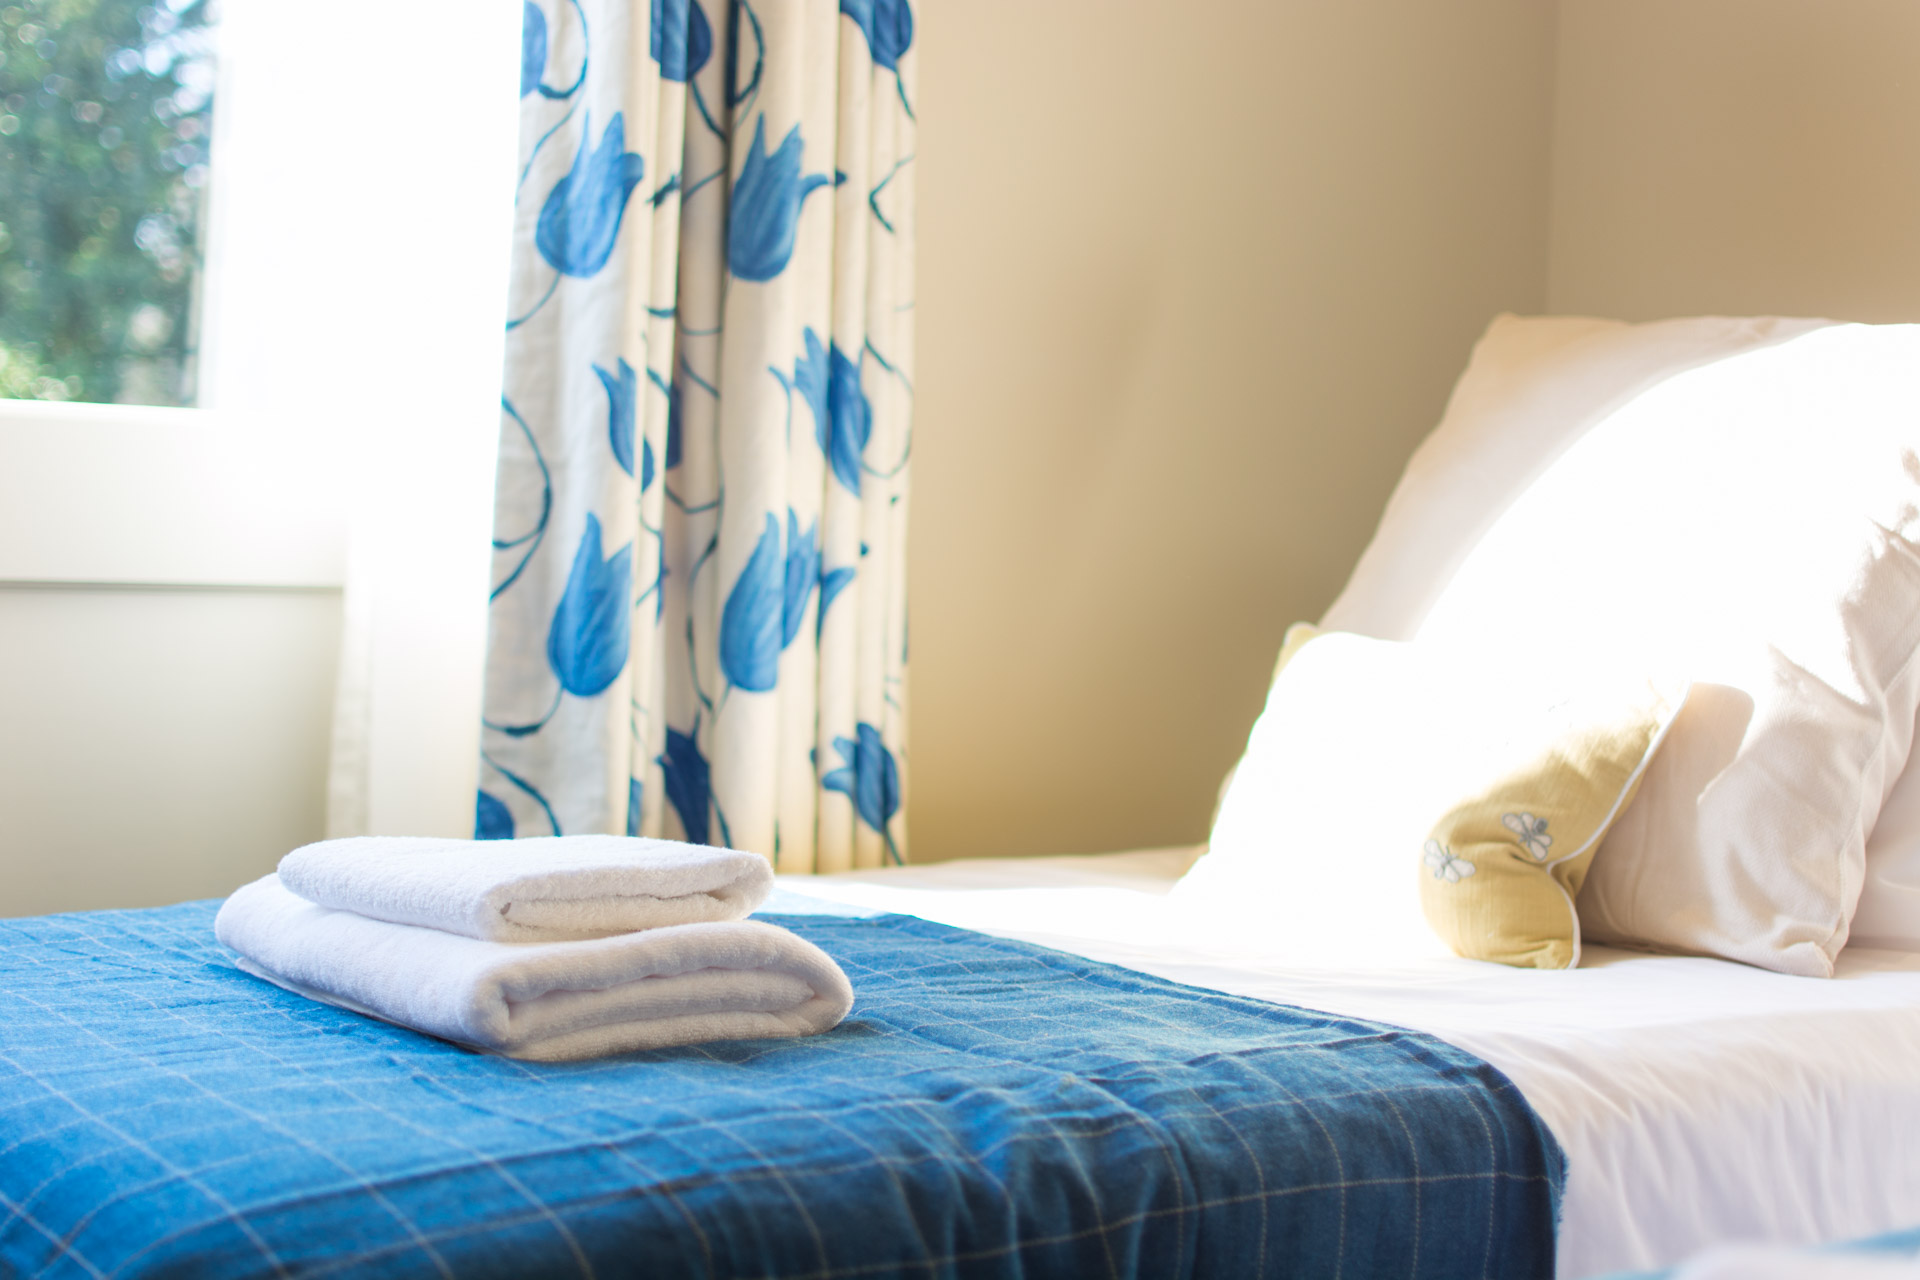 Close up photo of white towel on twin room bed.